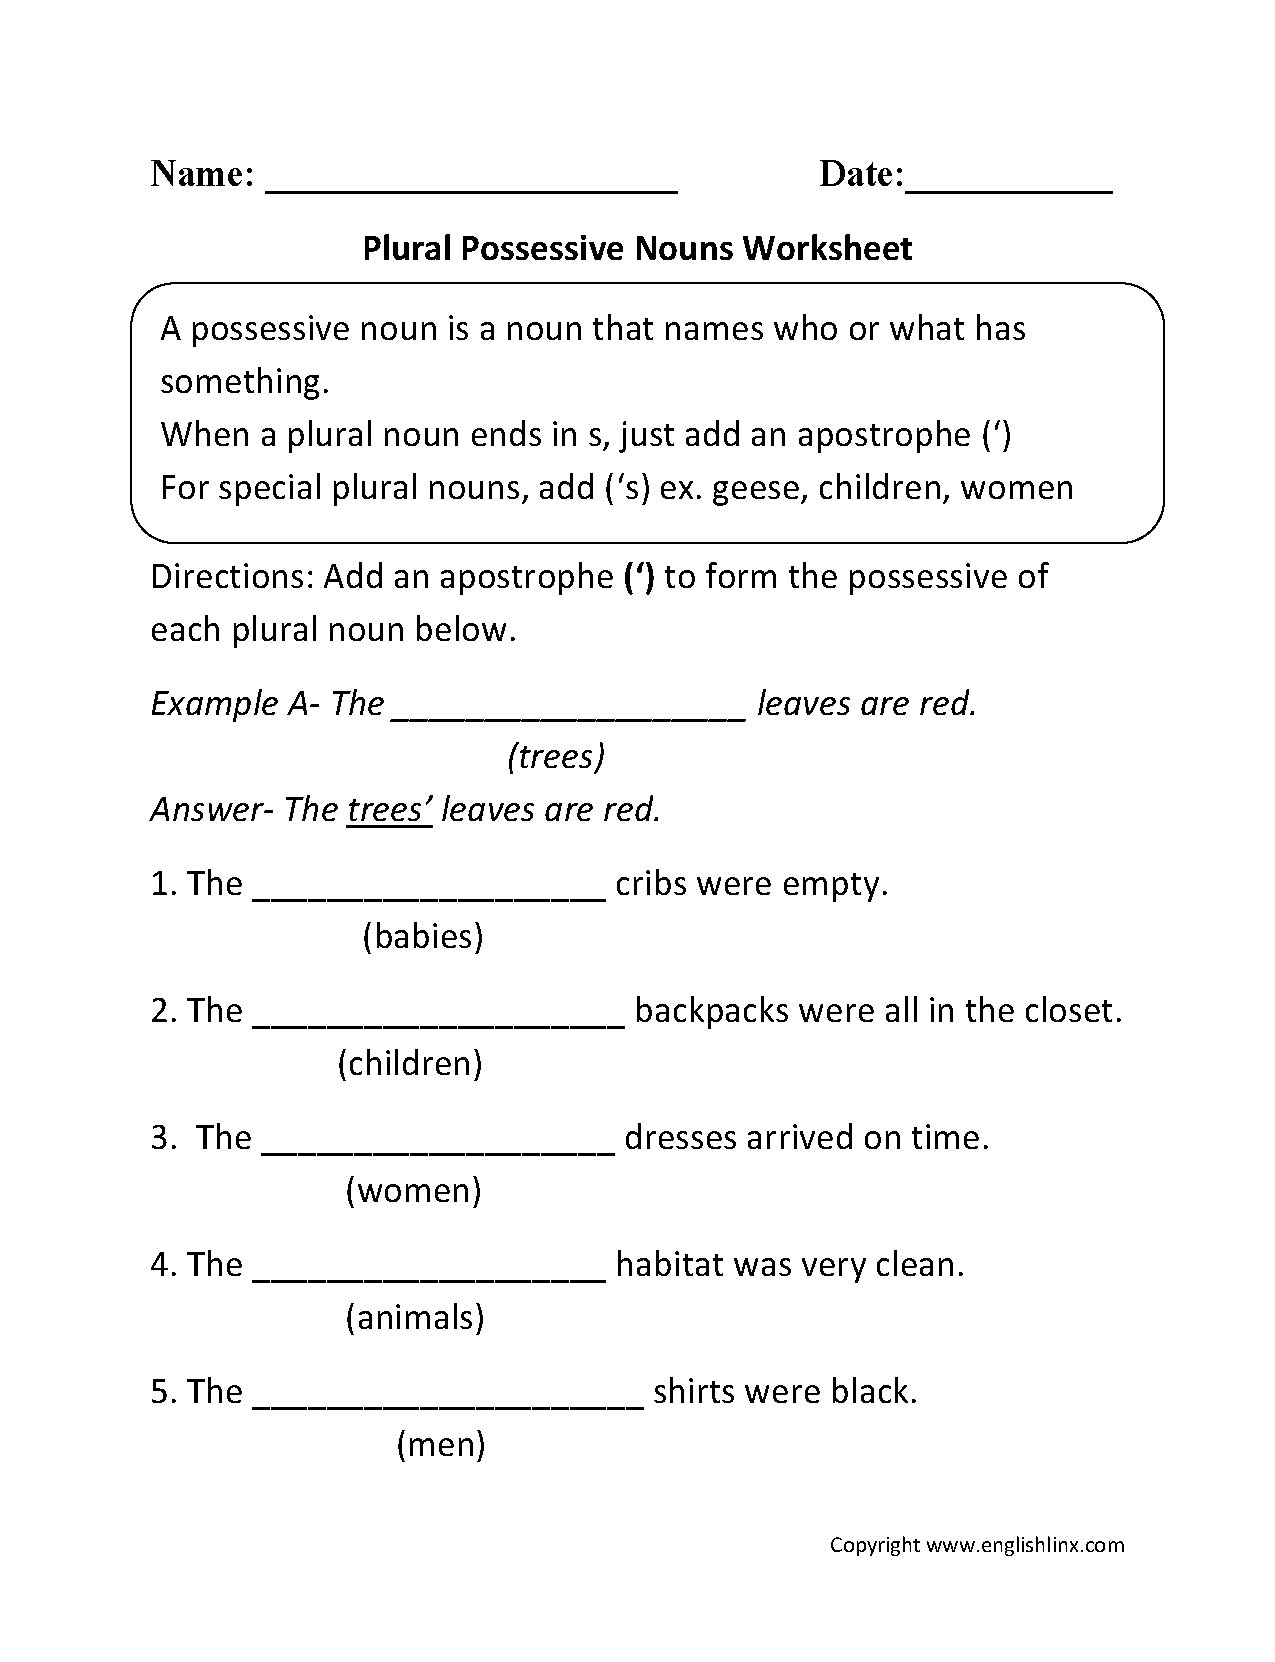 Aldiablosus  Unique Nouns Worksheets  Possessive Nouns Worksheets With Interesting Possessive Nouns Worksheets With Adorable Mileage Worksheet For Taxes Also Scientific Method Printable Worksheet In Addition Pre K Sequencing Worksheets And Ladybug Worksheet As Well As Types Of Adjectives Worksheet Additionally Reproduction In Plants Worksheet From Englishlinxcom With Aldiablosus  Interesting Nouns Worksheets  Possessive Nouns Worksheets With Adorable Possessive Nouns Worksheets And Unique Mileage Worksheet For Taxes Also Scientific Method Printable Worksheet In Addition Pre K Sequencing Worksheets From Englishlinxcom